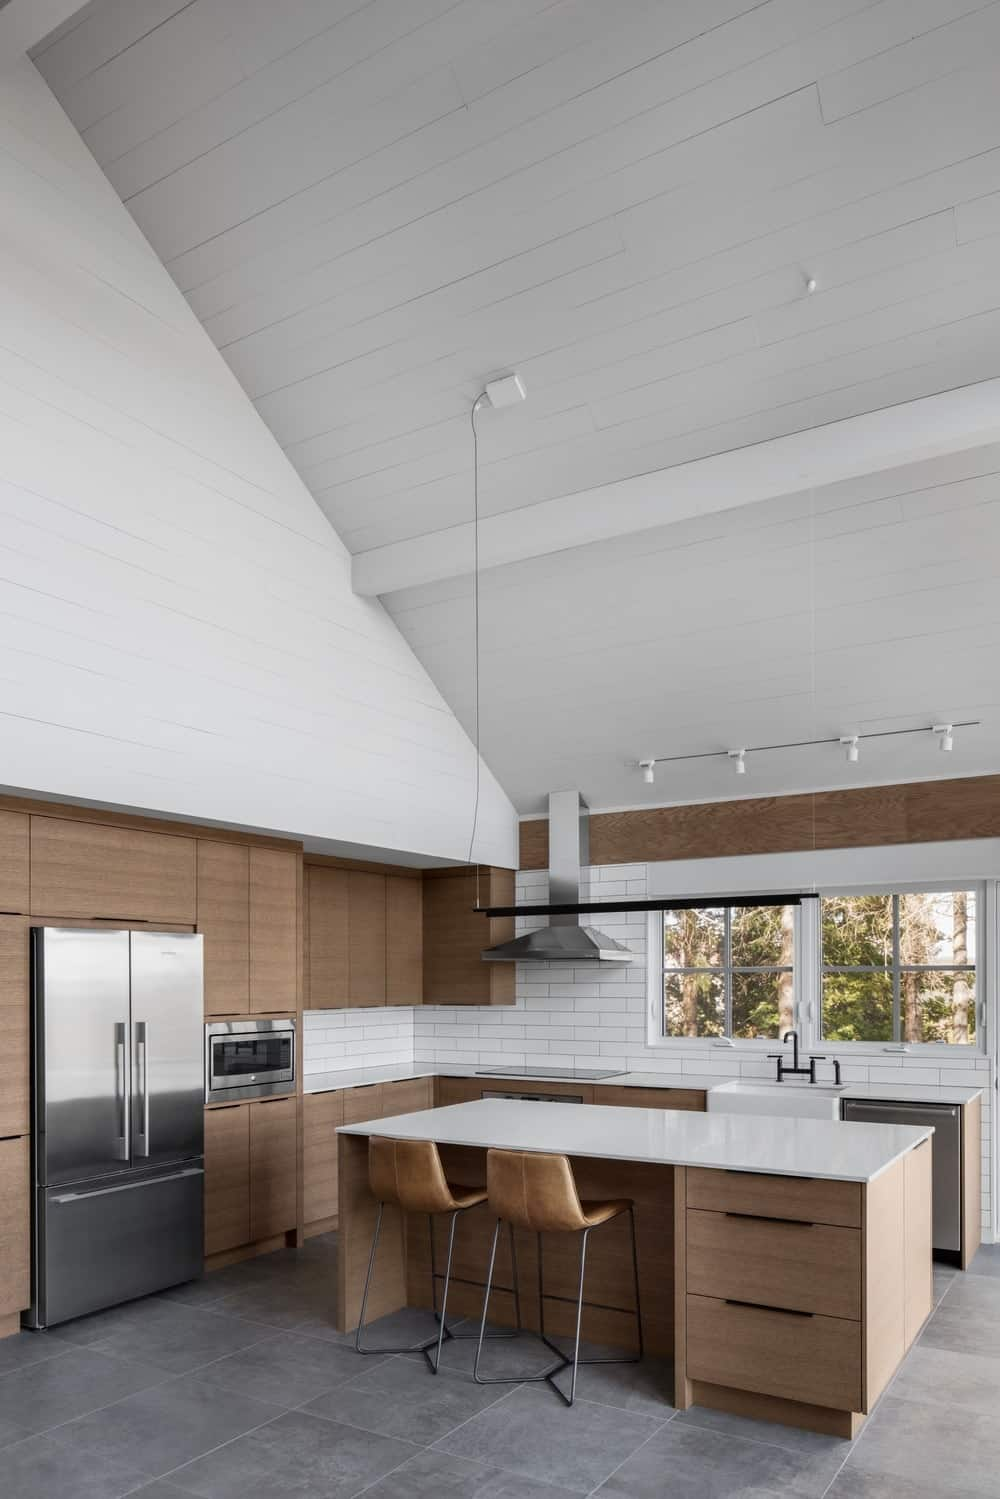 The full view of the kitchen showcasing its appliances, center island, white counters and ceiling lights. Photo credit: Adrien Williams